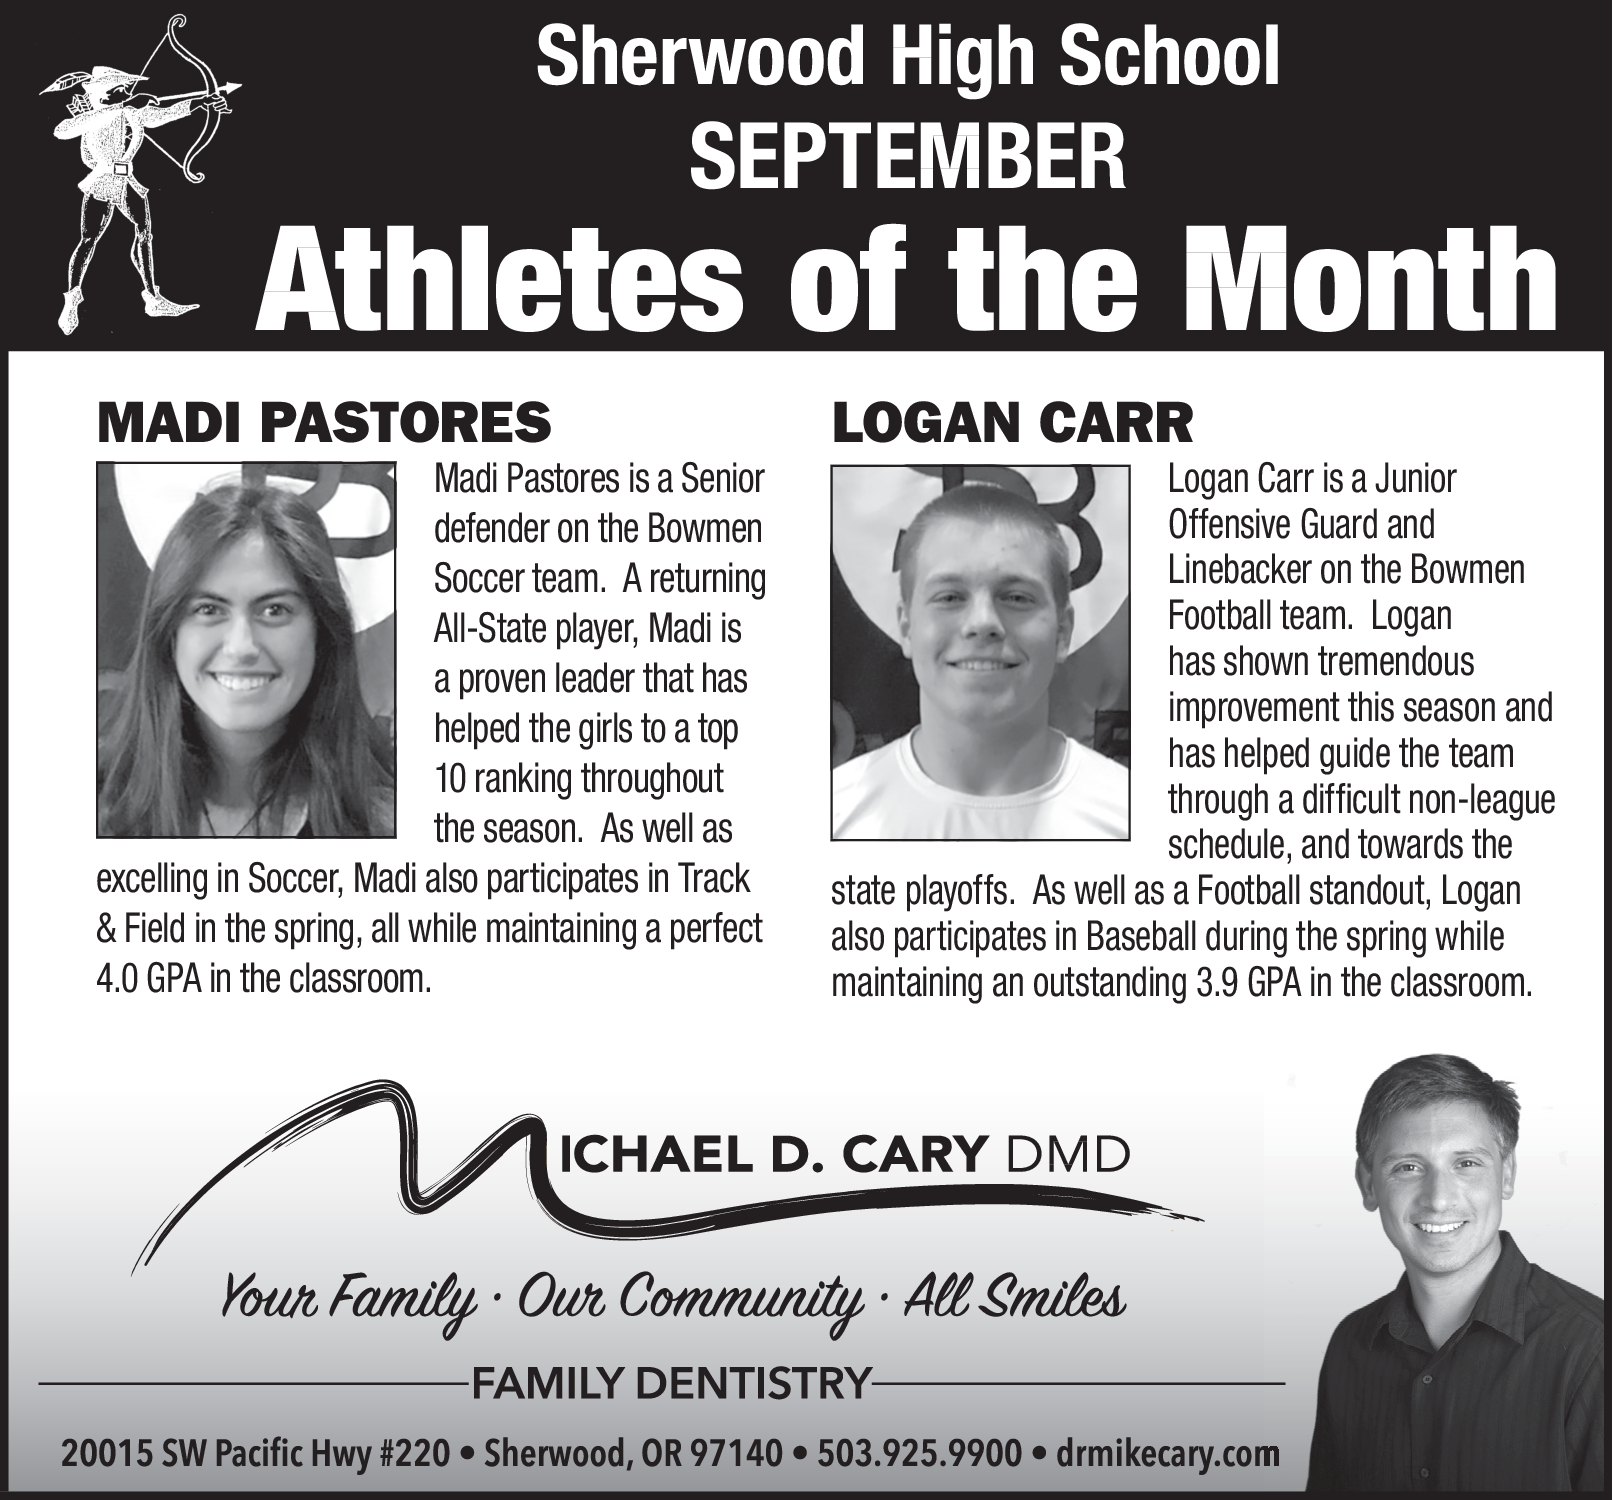 Athletes Of This Month Madi Pastores And Logan Carr in